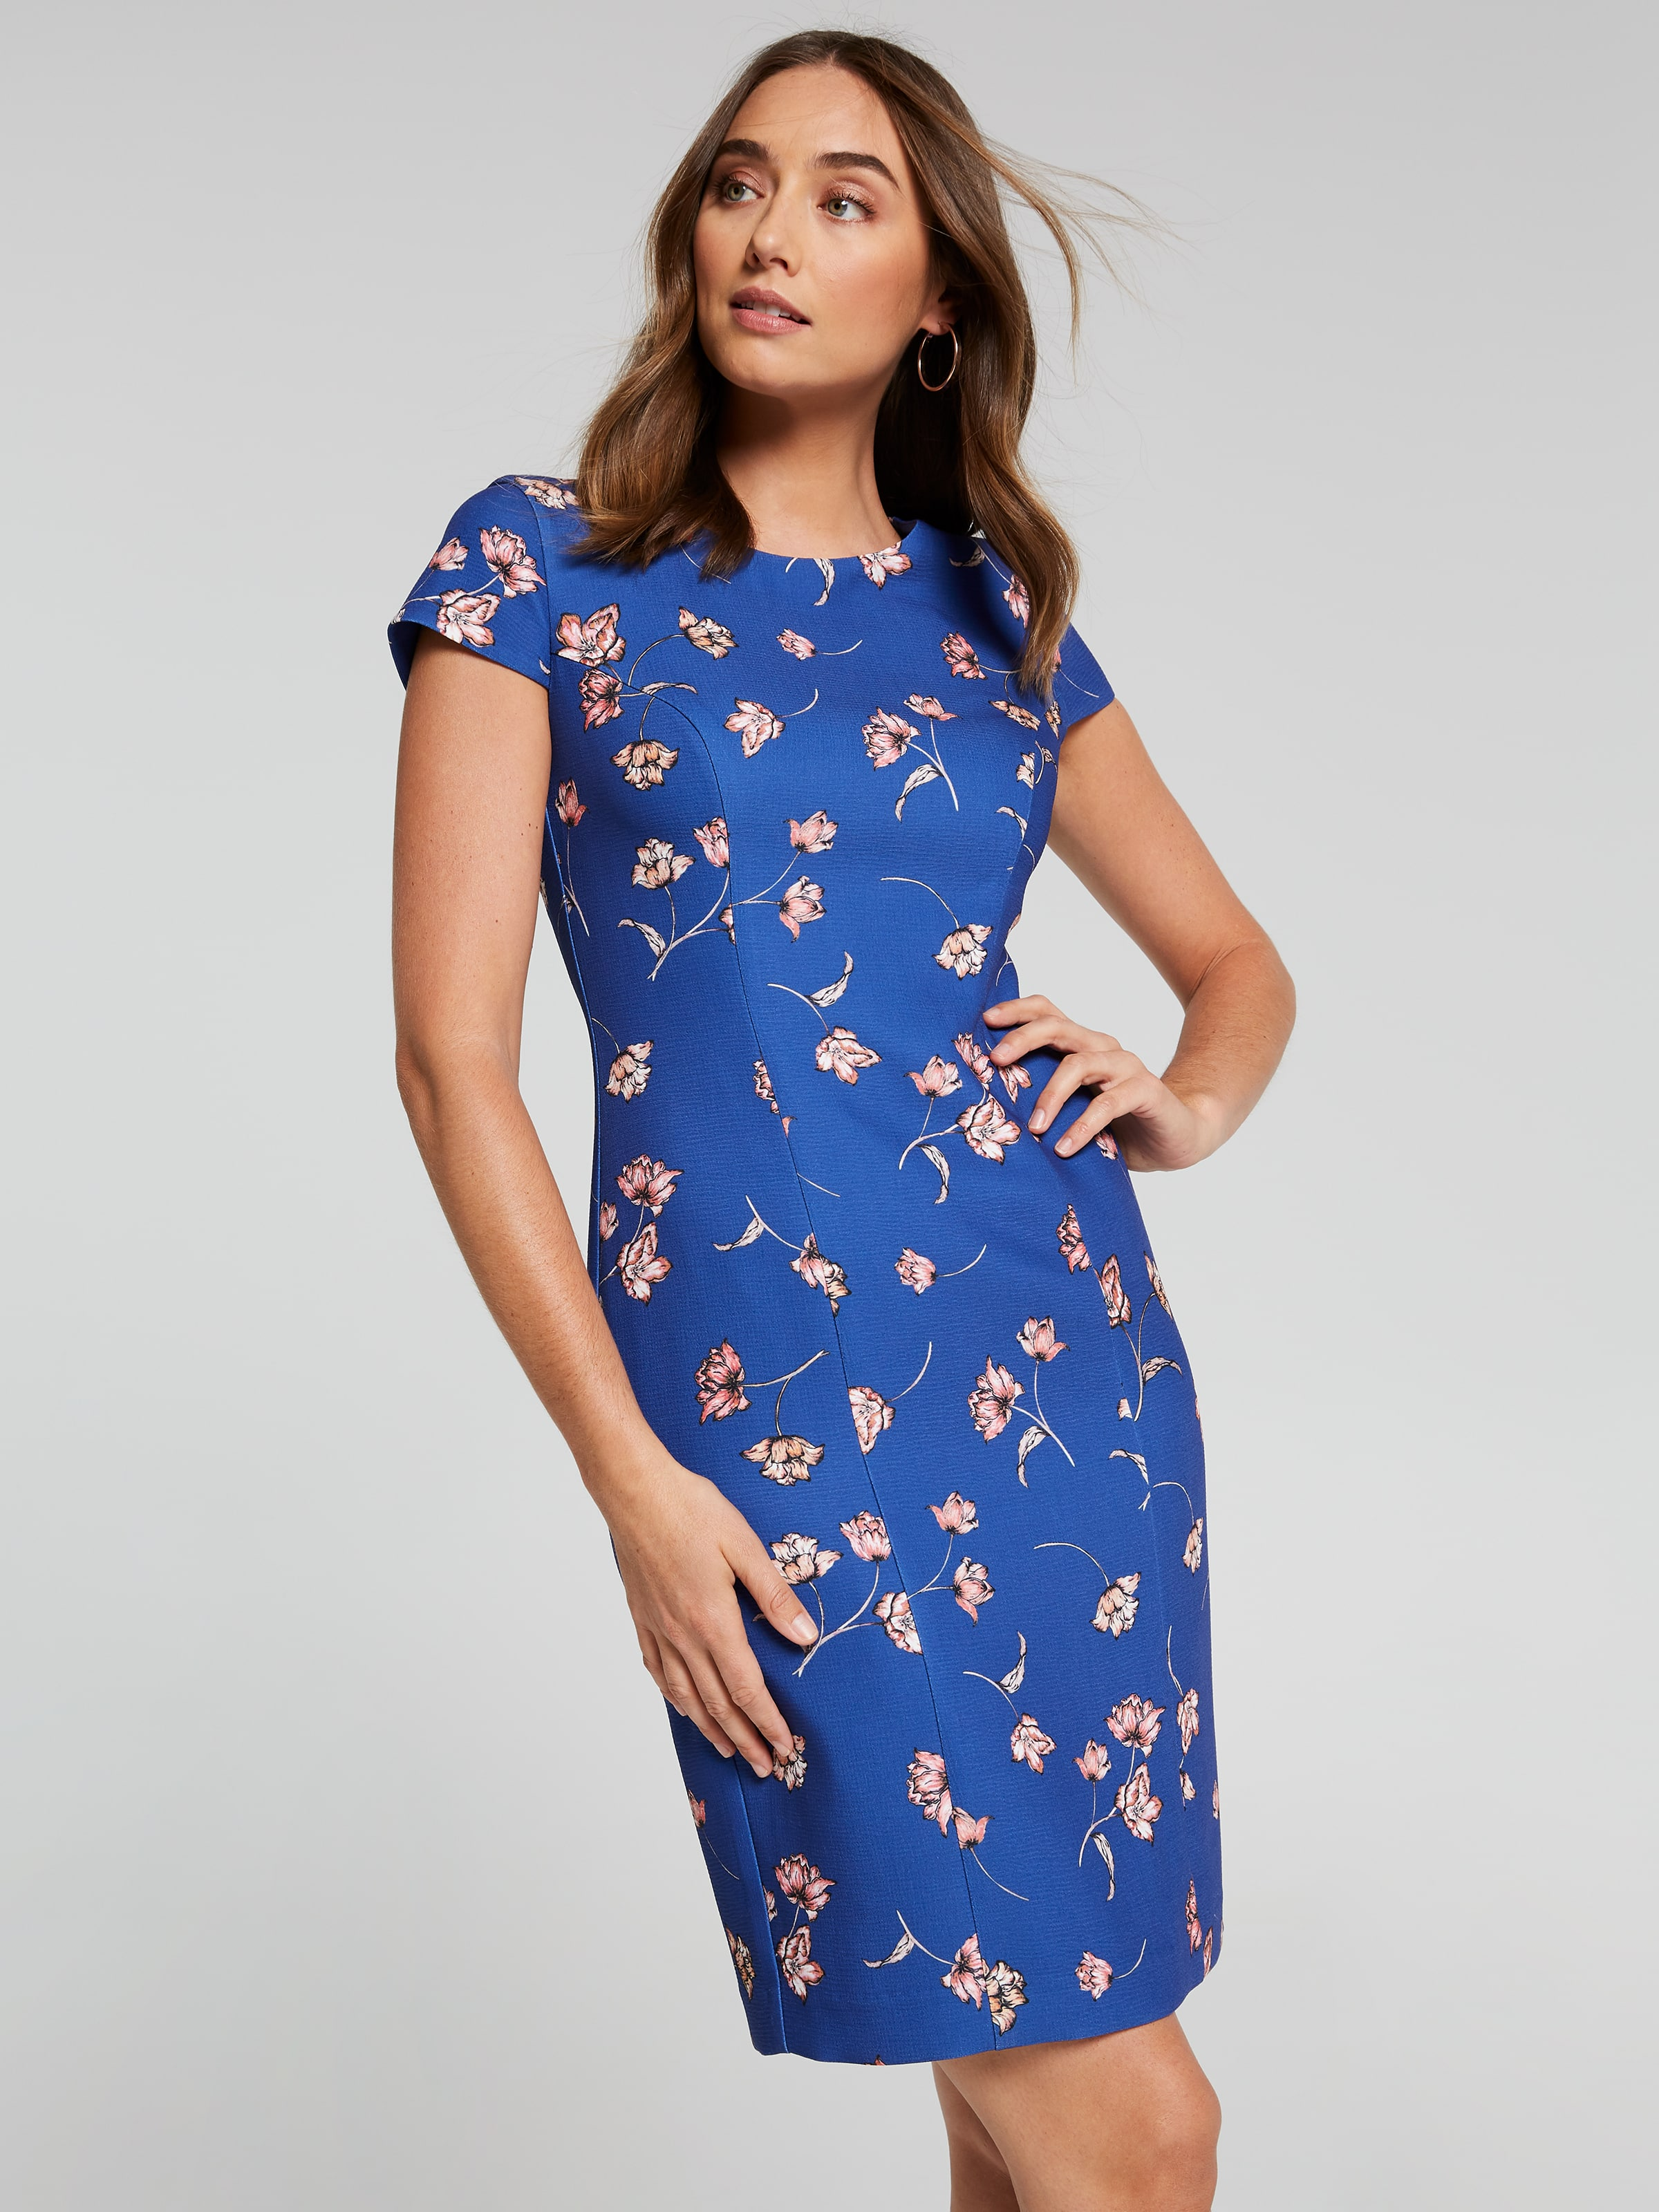 Image of Jacqui E Australia Jacqui E Eve Textured Shift Dress